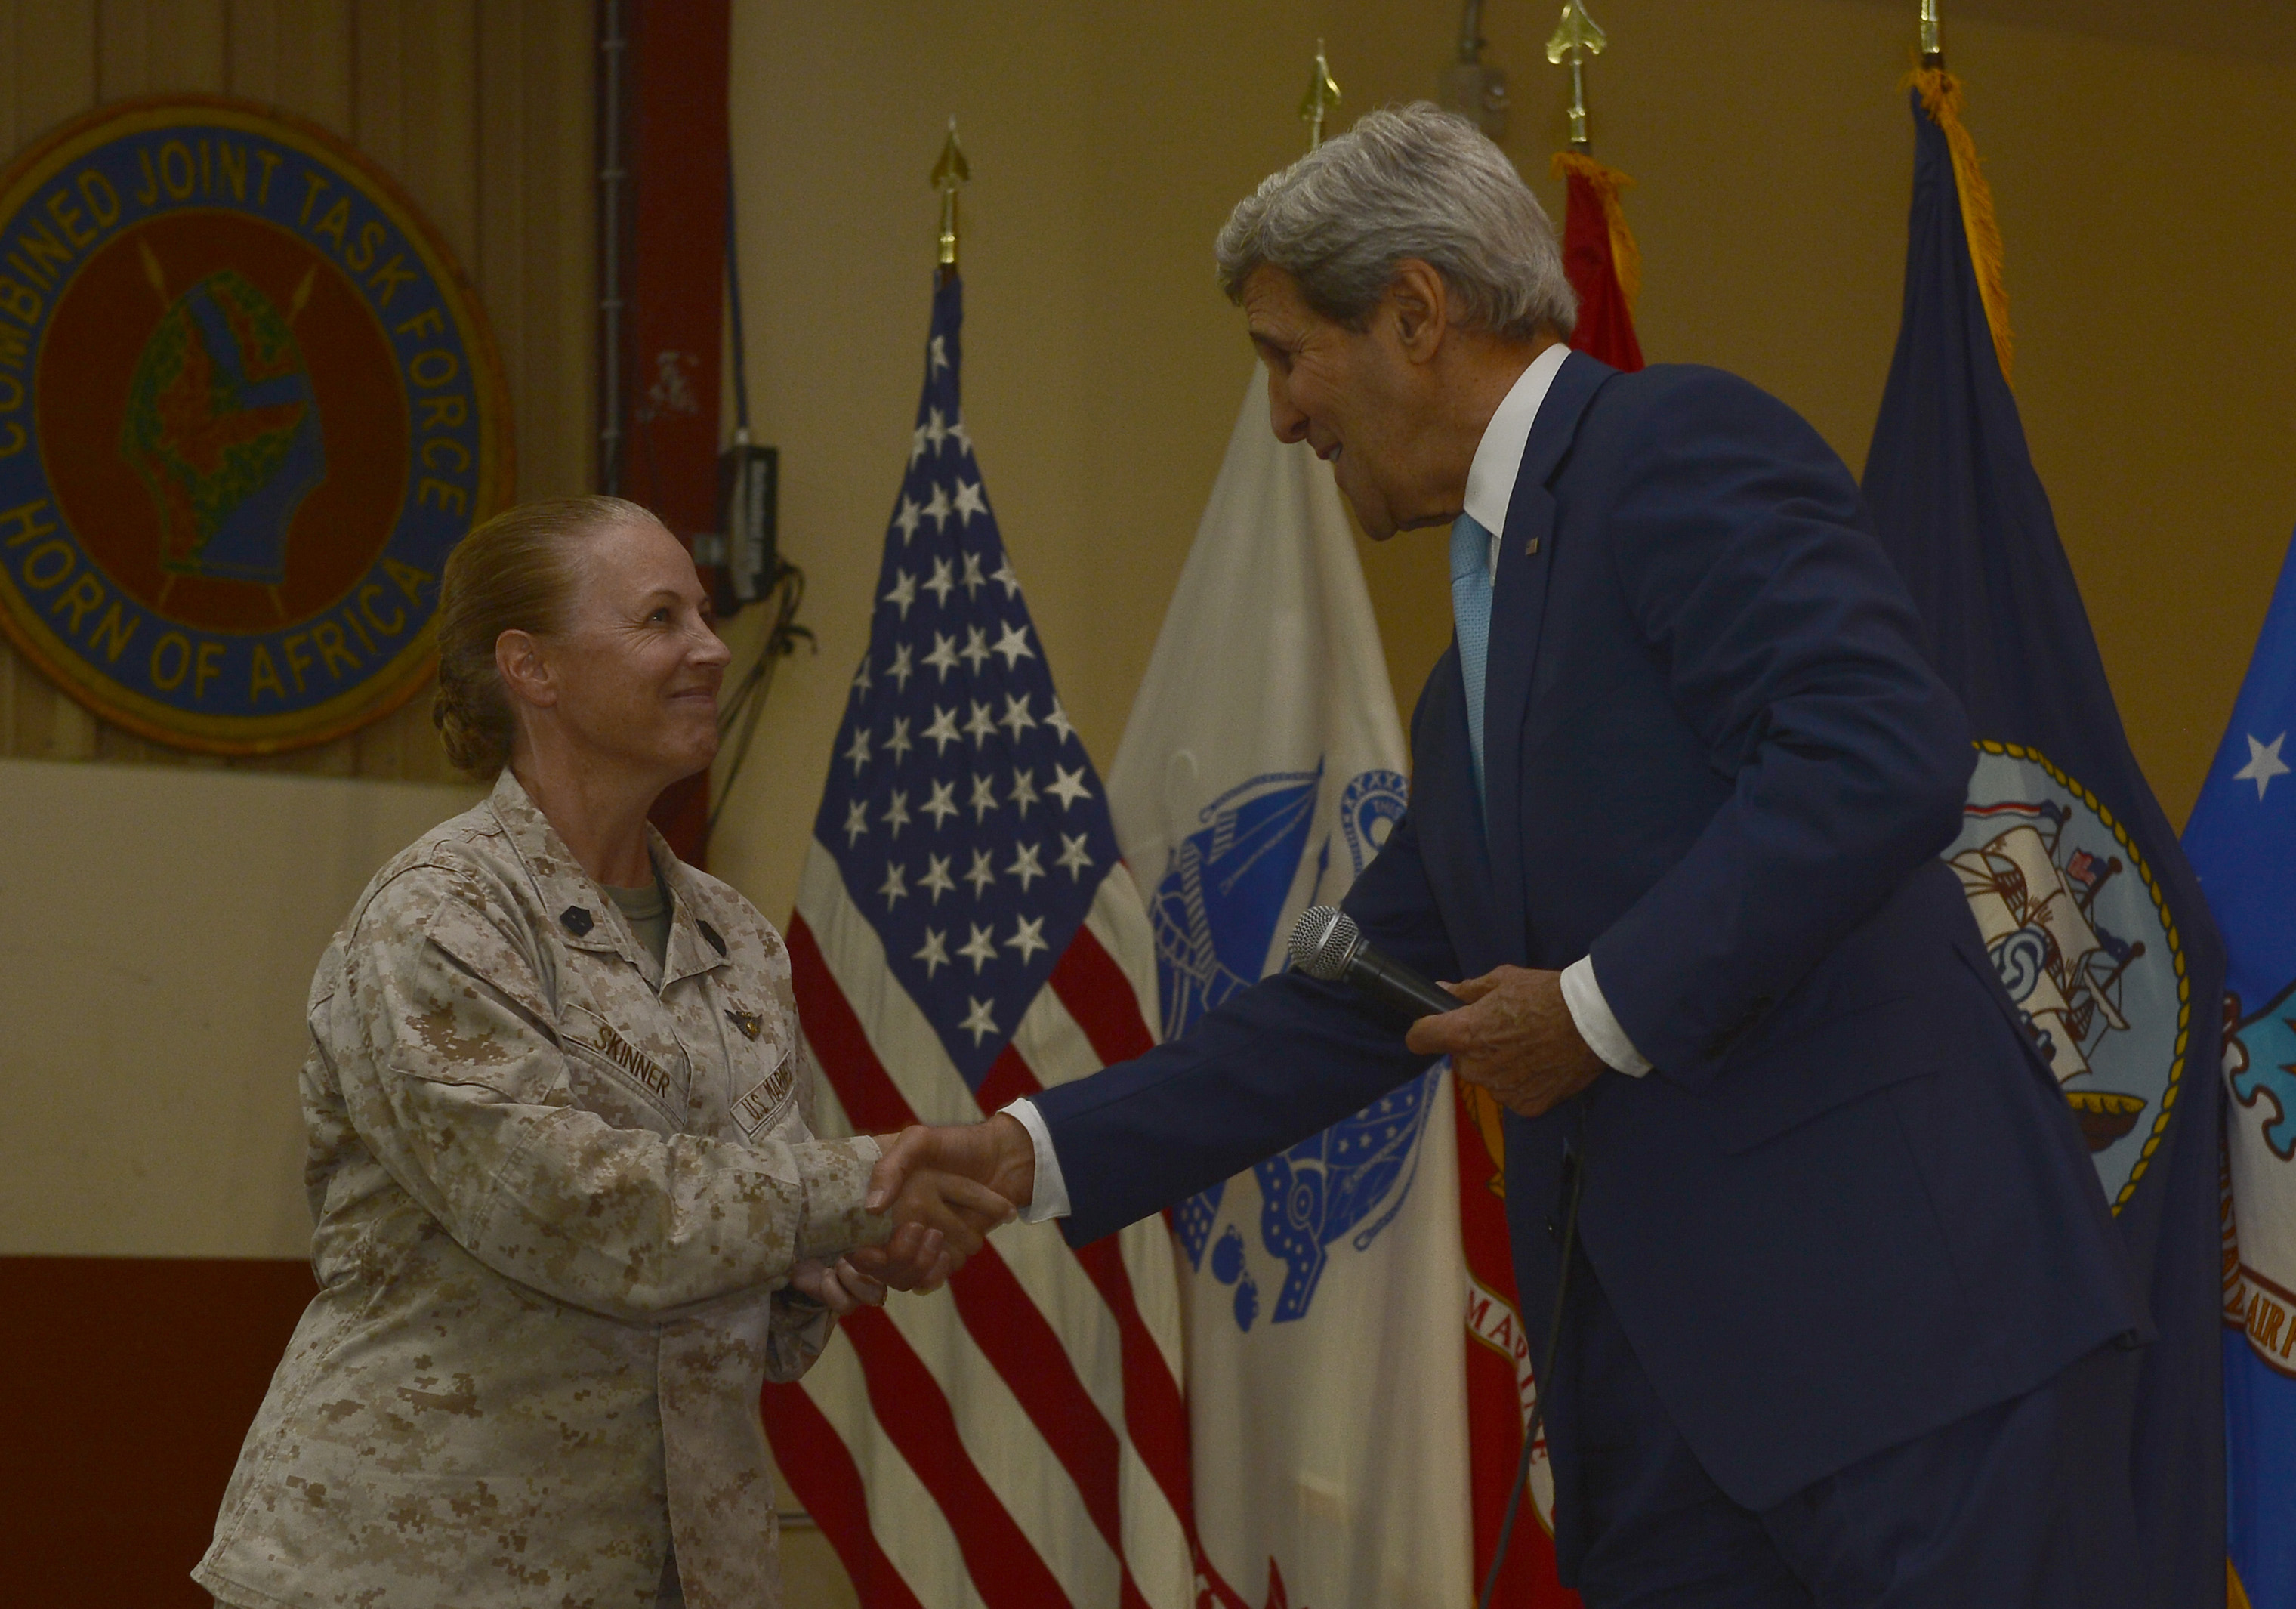 John Kerry, U.S. Secretary of State recognized U.S. Marine Corps Sgt. Maj. Bonnie Skinner, Combined Joint Task Force- Horn of Africa command senior enlisted leader, during his remarks to Camp Lemonnier service members at Camp Lemonnier, Djibouti, May 6, 2015. Skinner was praised for her overall dedication during her two years at CJTF-HOA.